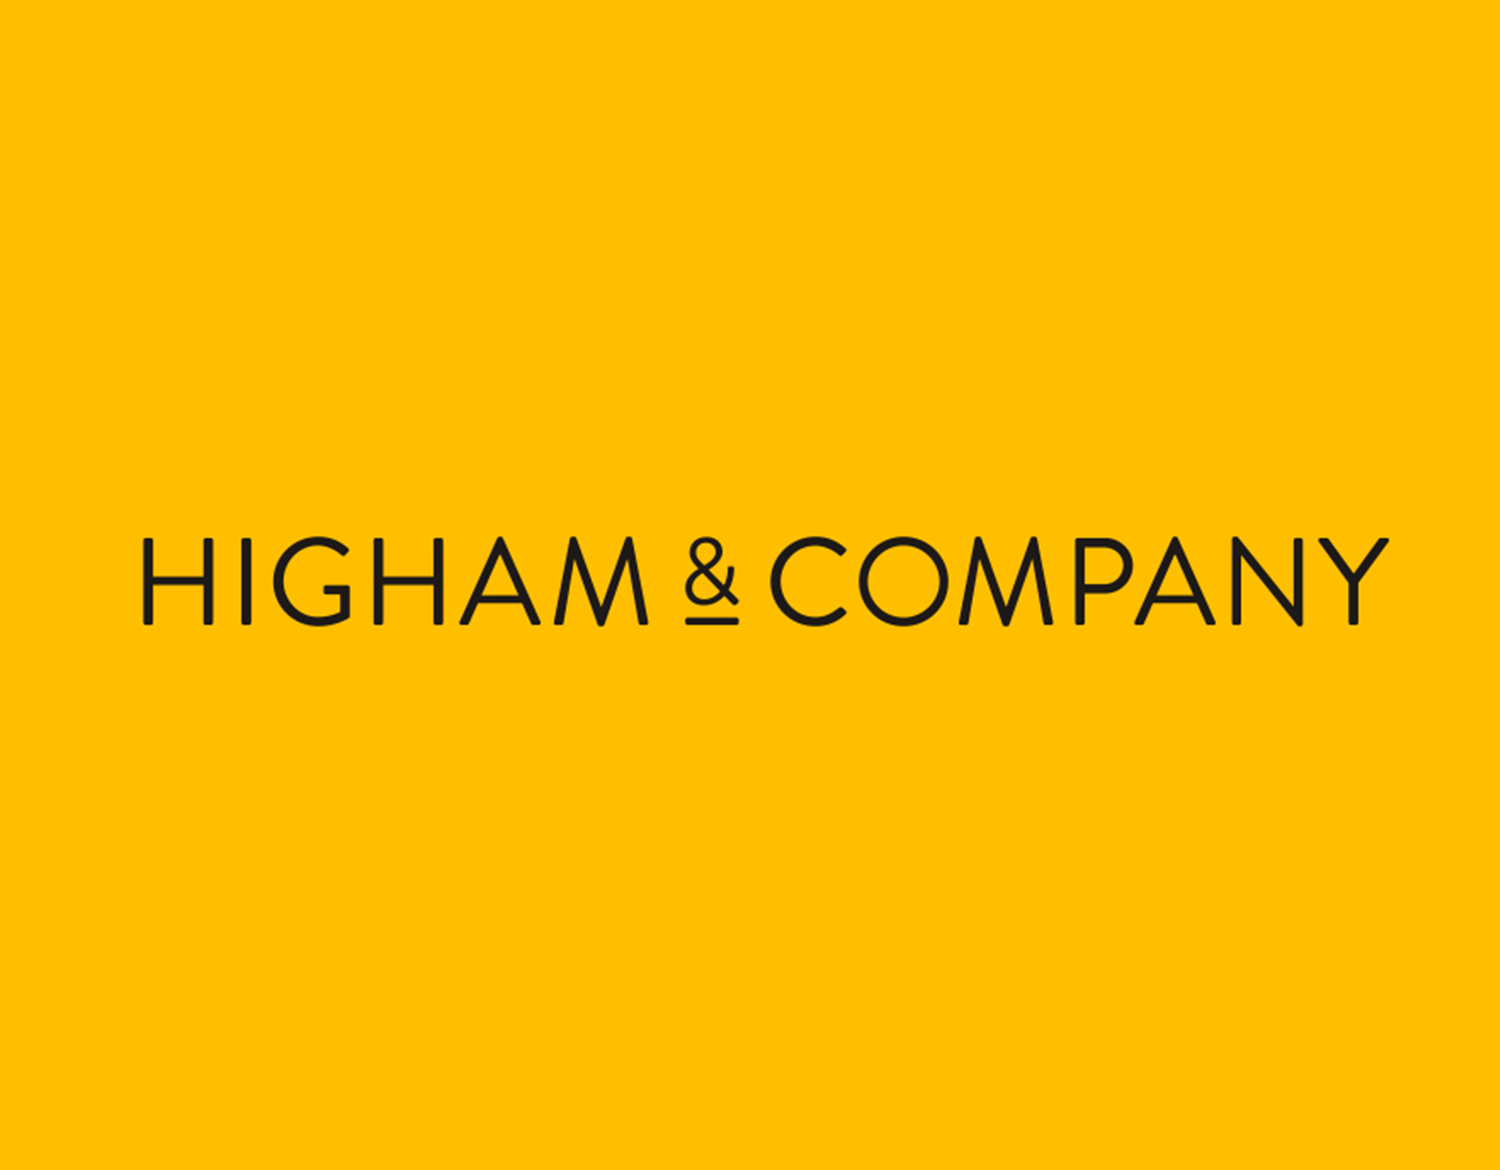 Higham & Company - Be understood.